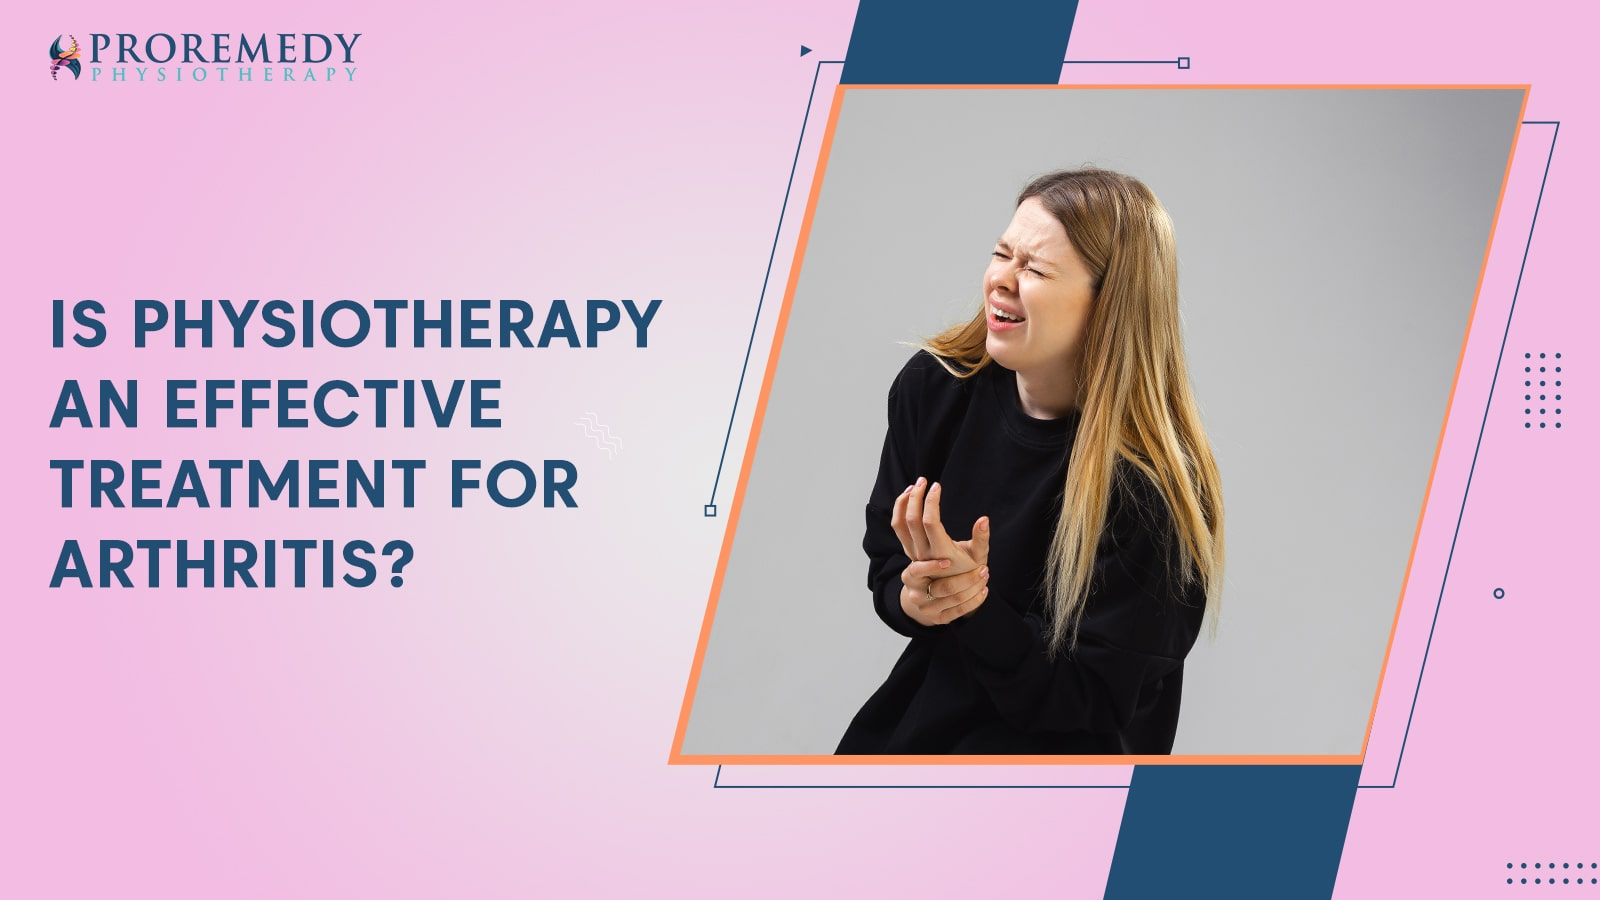 Physiotherapy An Effective Treatment For Arthritis?